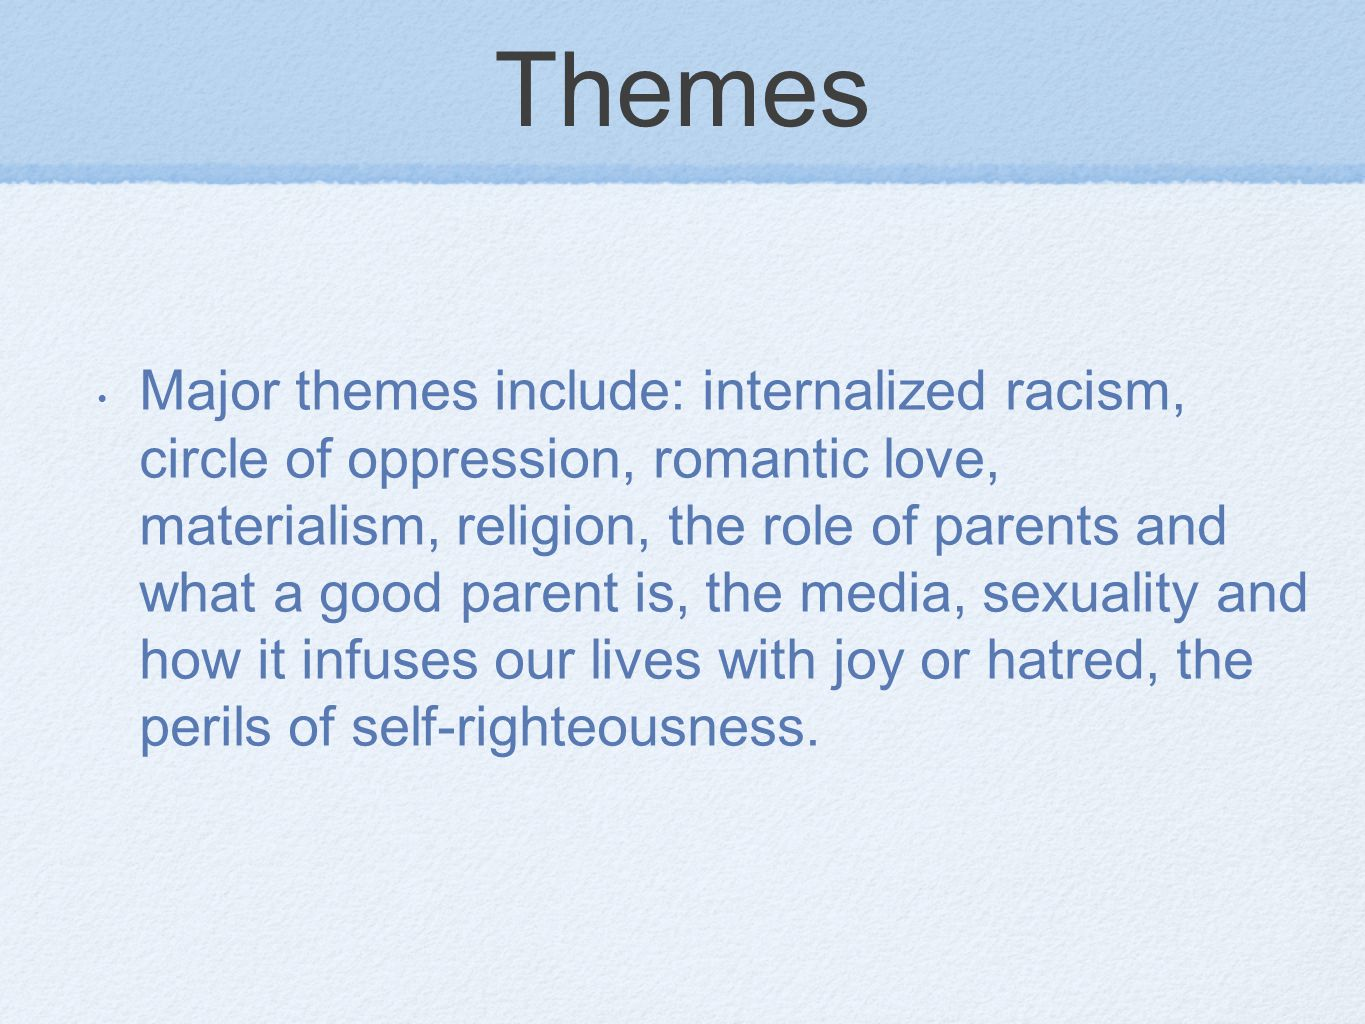 Themes Major themes include: internalized racism, circle of oppression, romantic love, materialism, religion, the role of parents and what a good parent is, the media, sexuality and how it infuses our lives with joy or hatred, the perils of self-righteousness.